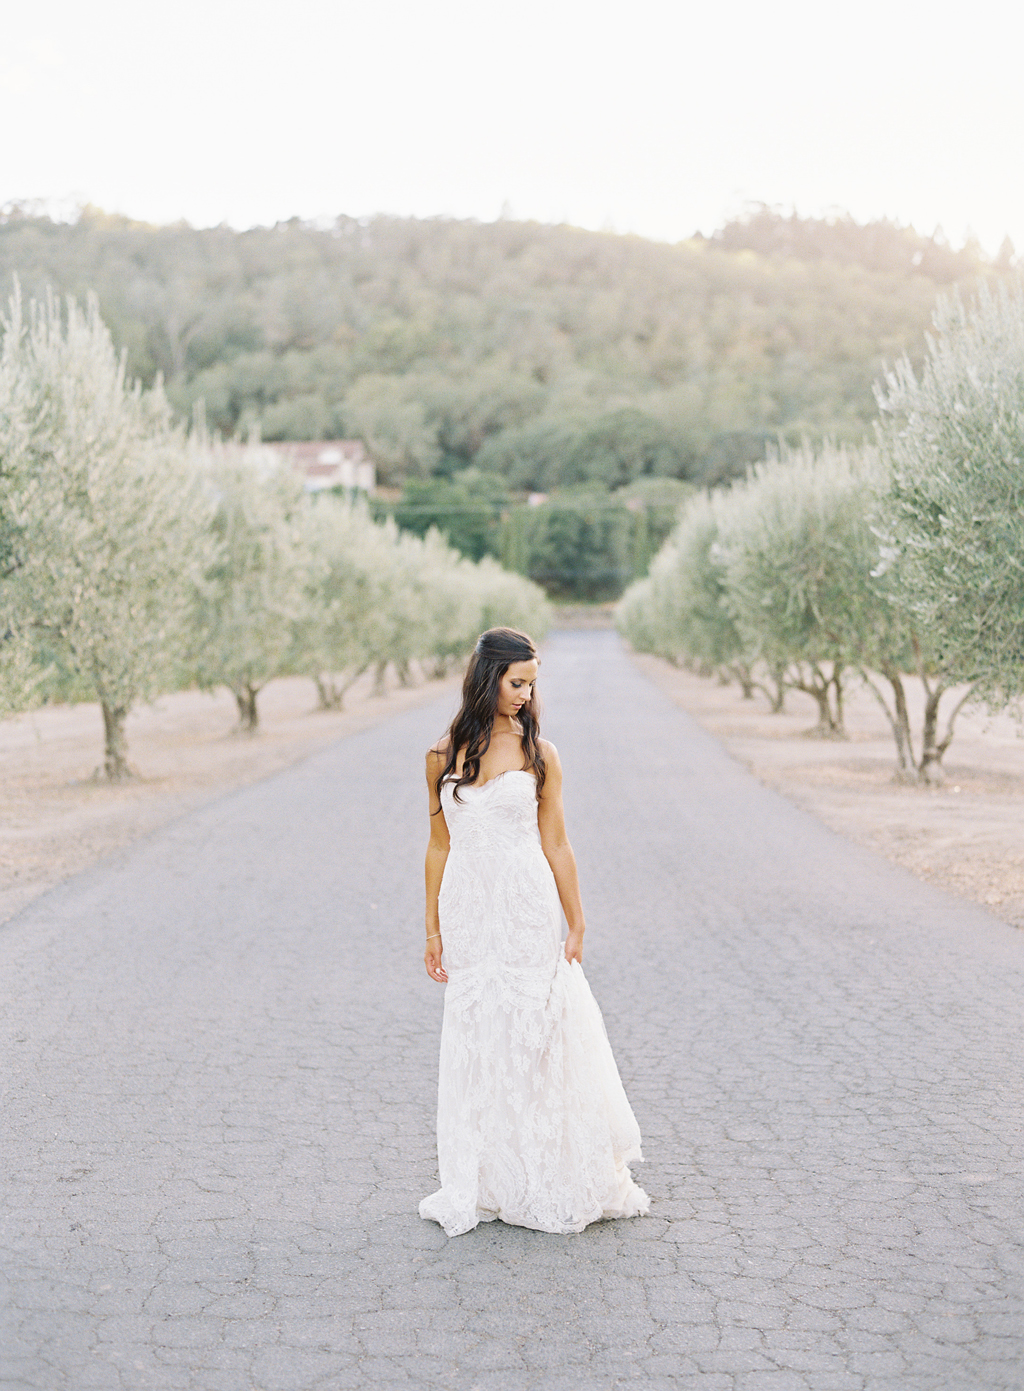 a bride poses for a film photograph on her wedding day in Napa.